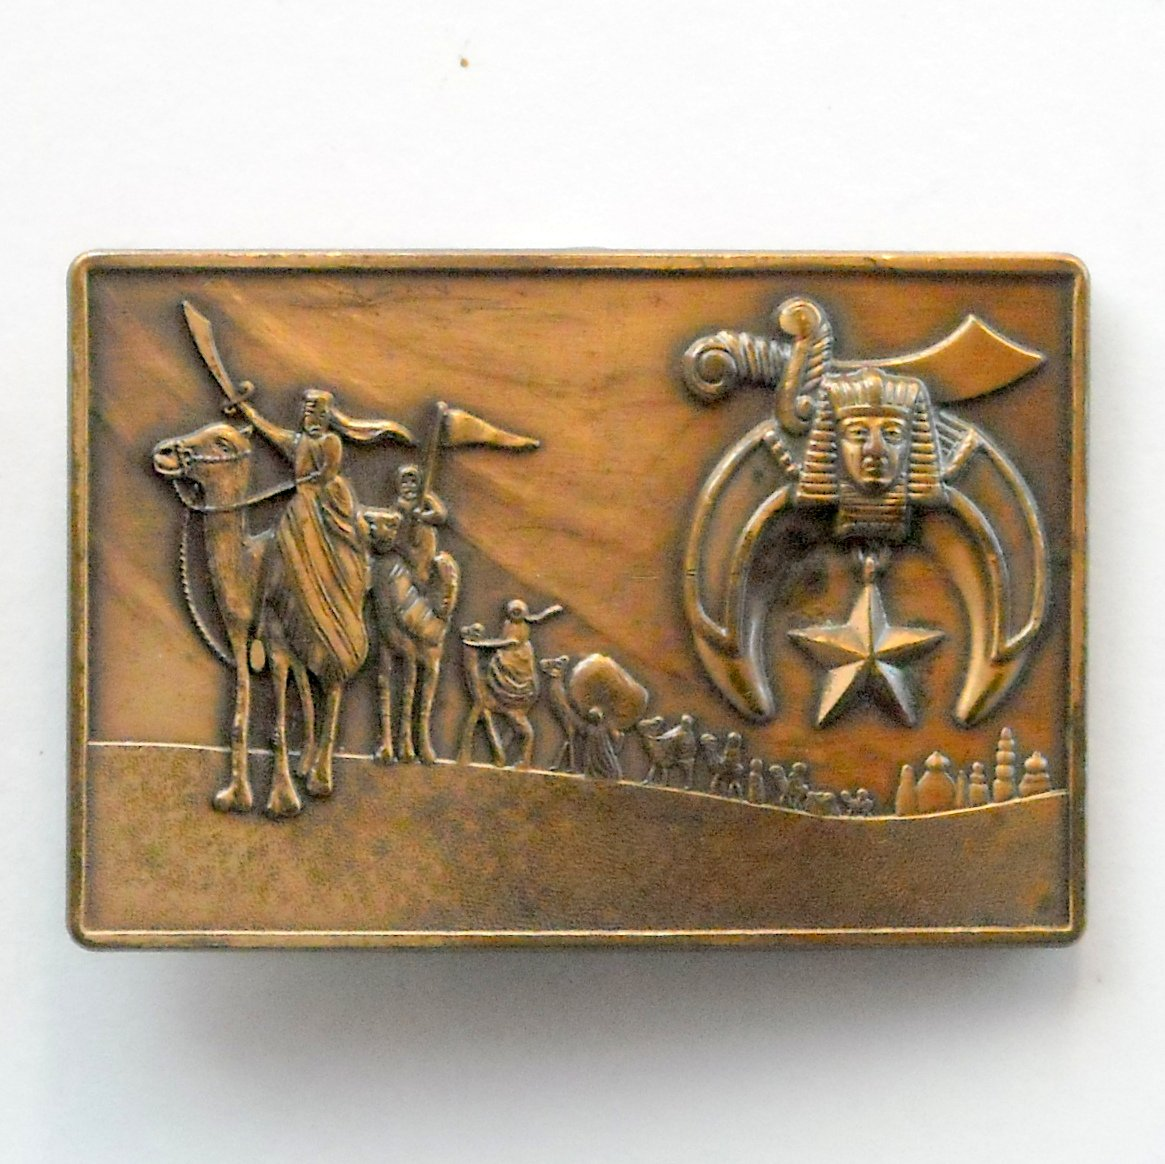 Shriners Solid Bronze Vintage belt buckle